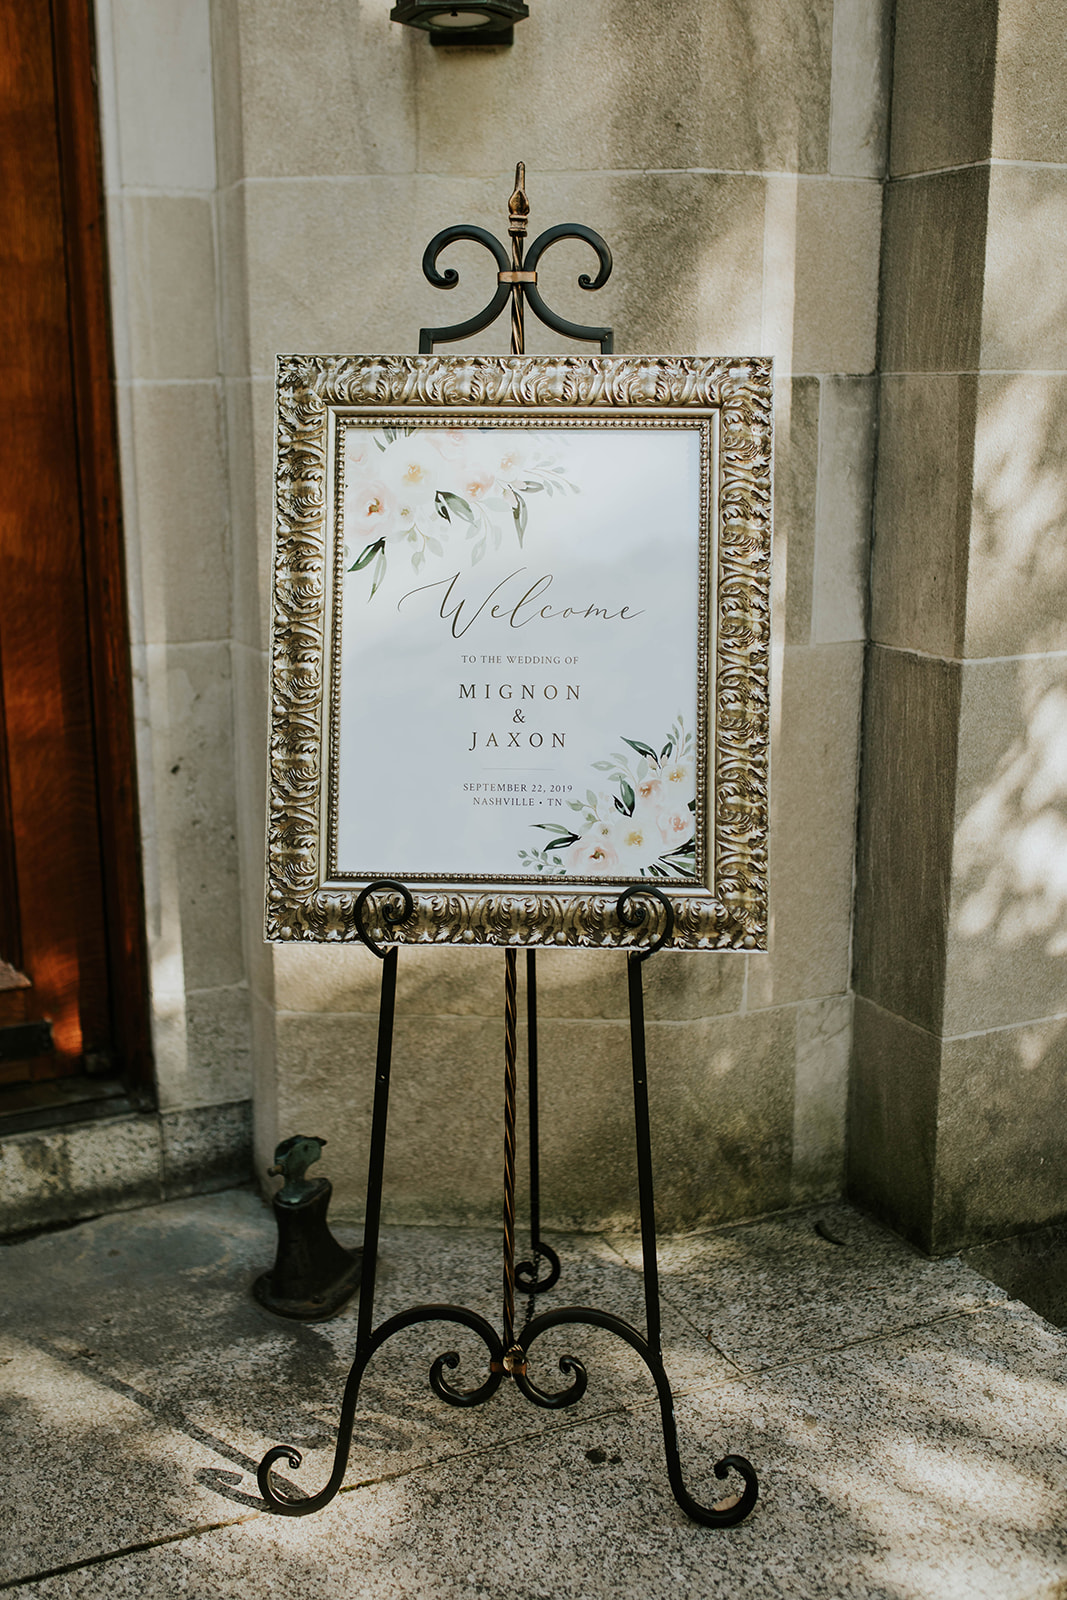 Wedding Welcome Sign: Through Victoria's Lens Photography featured on Nashville Bride Guide